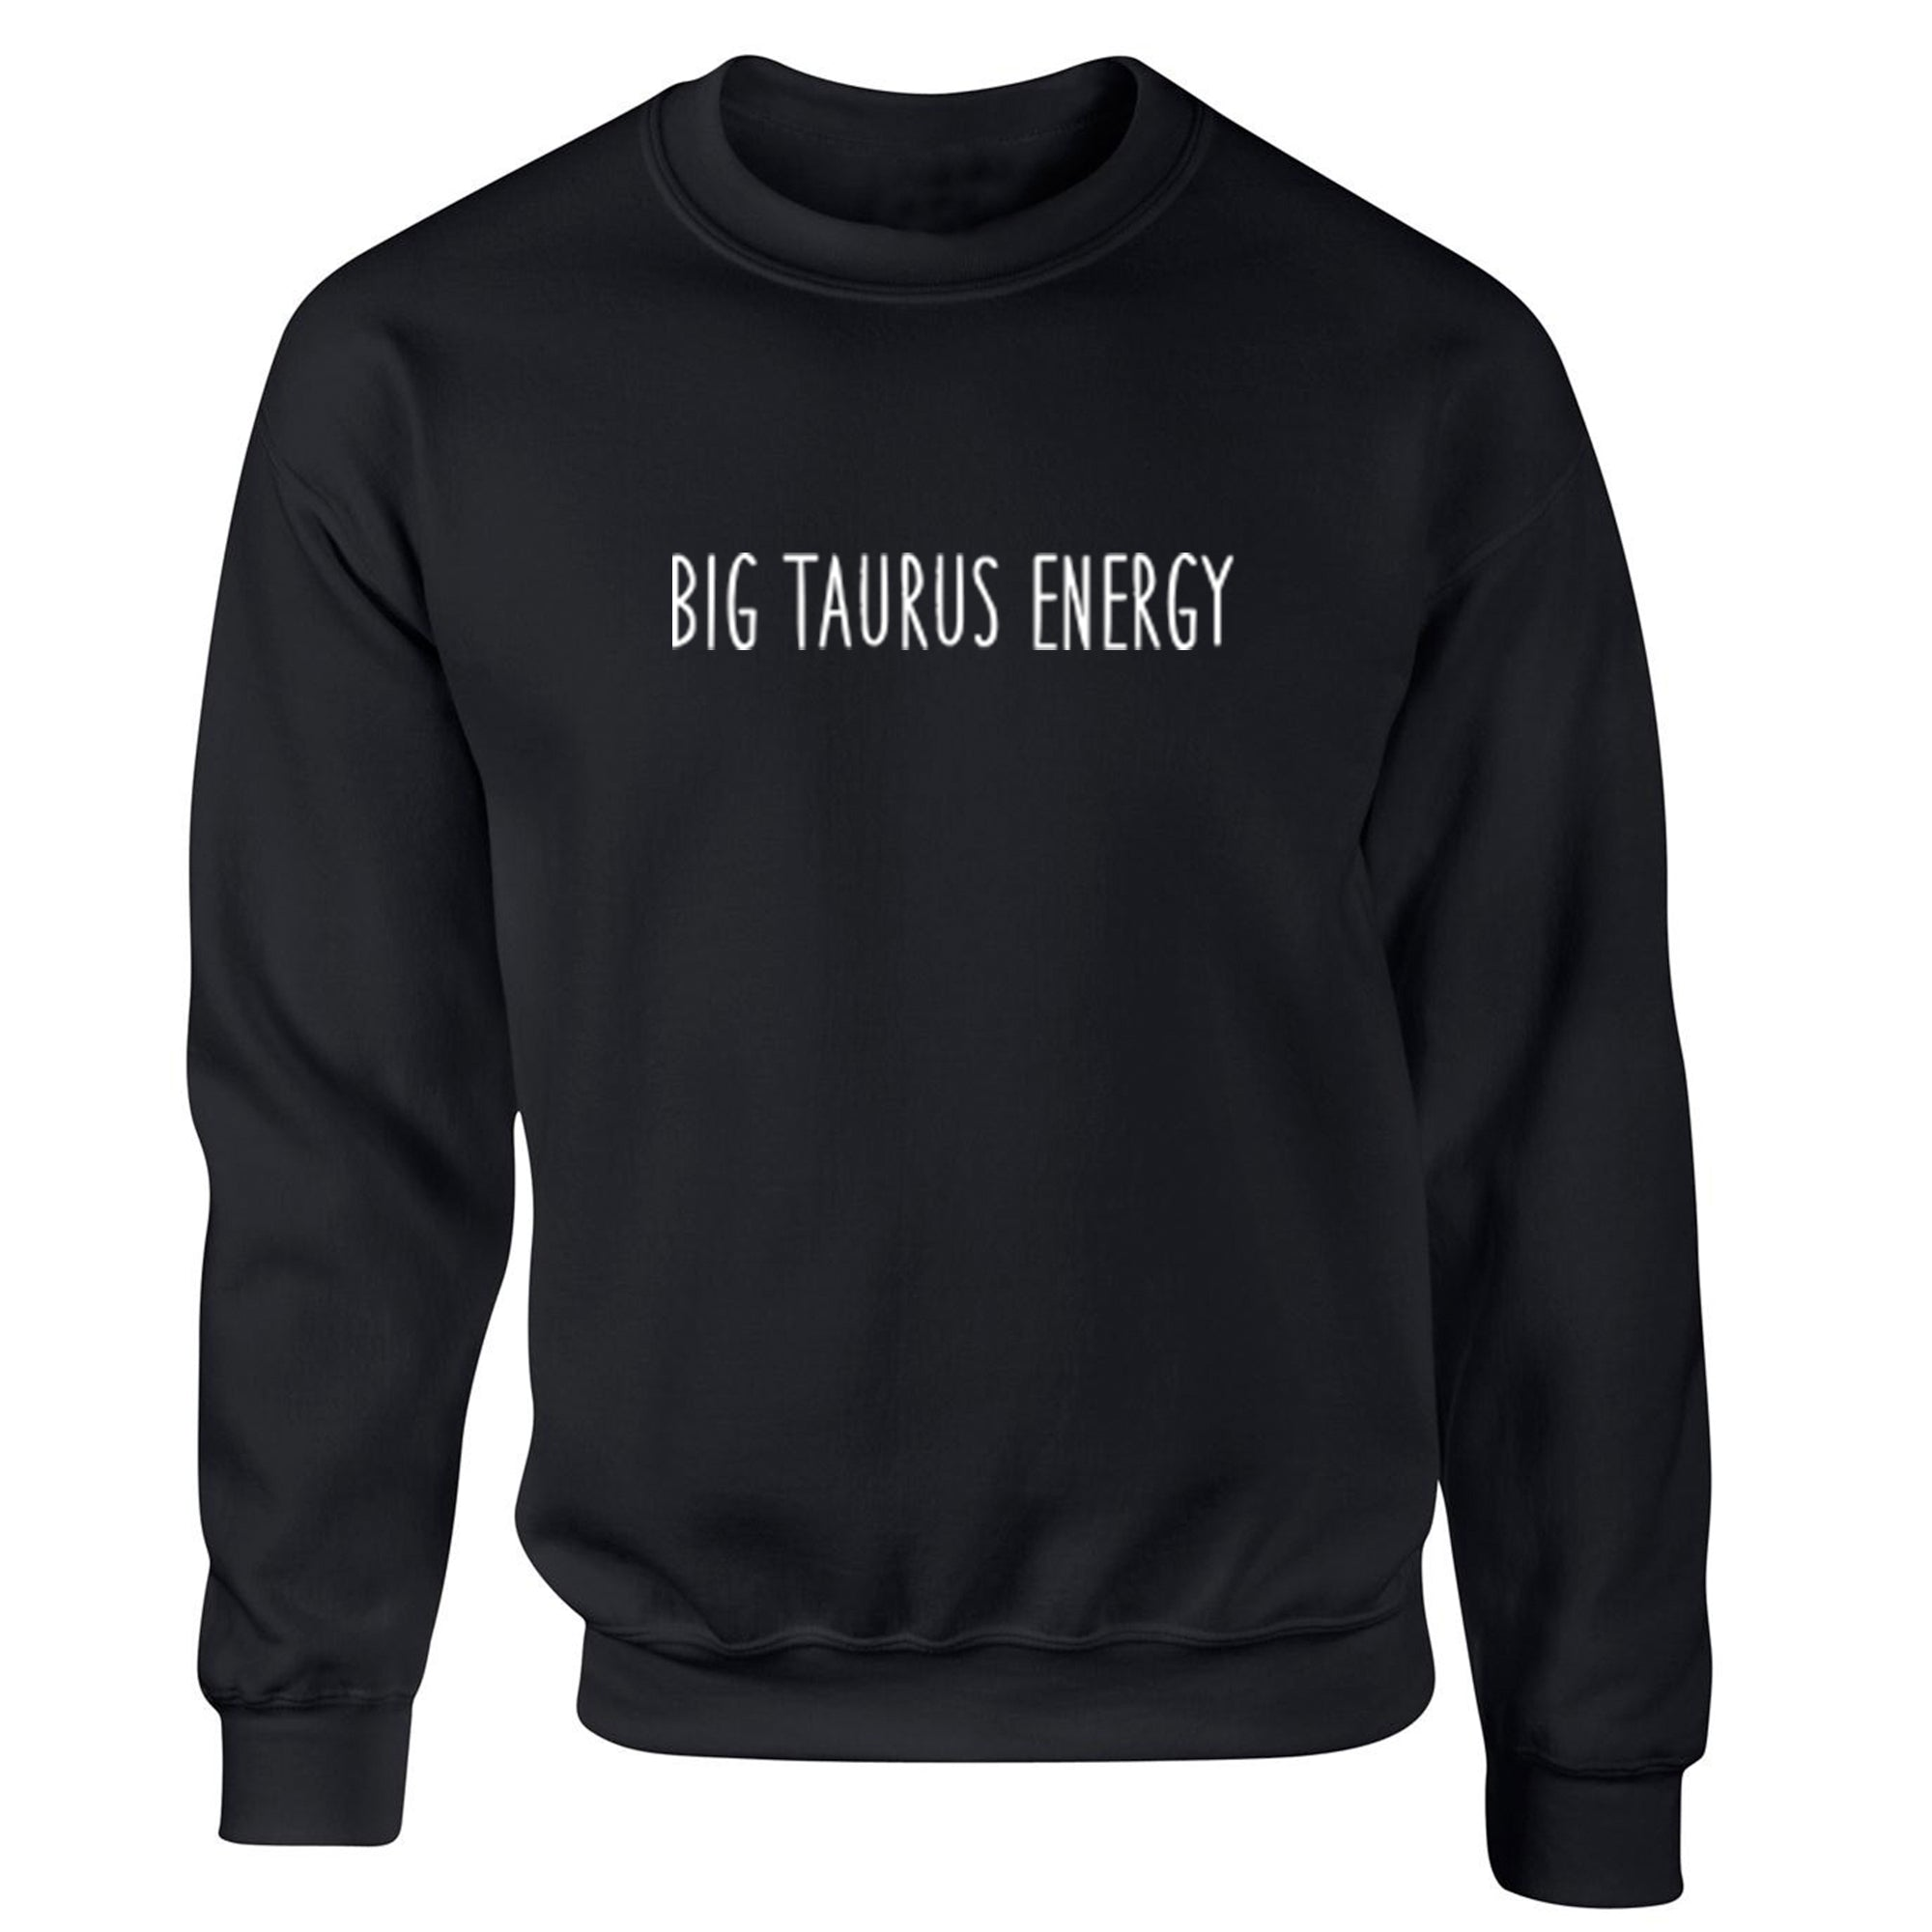 Big Taurus Energy Unisex Jumper S1012 - Illustrated Identity Ltd.